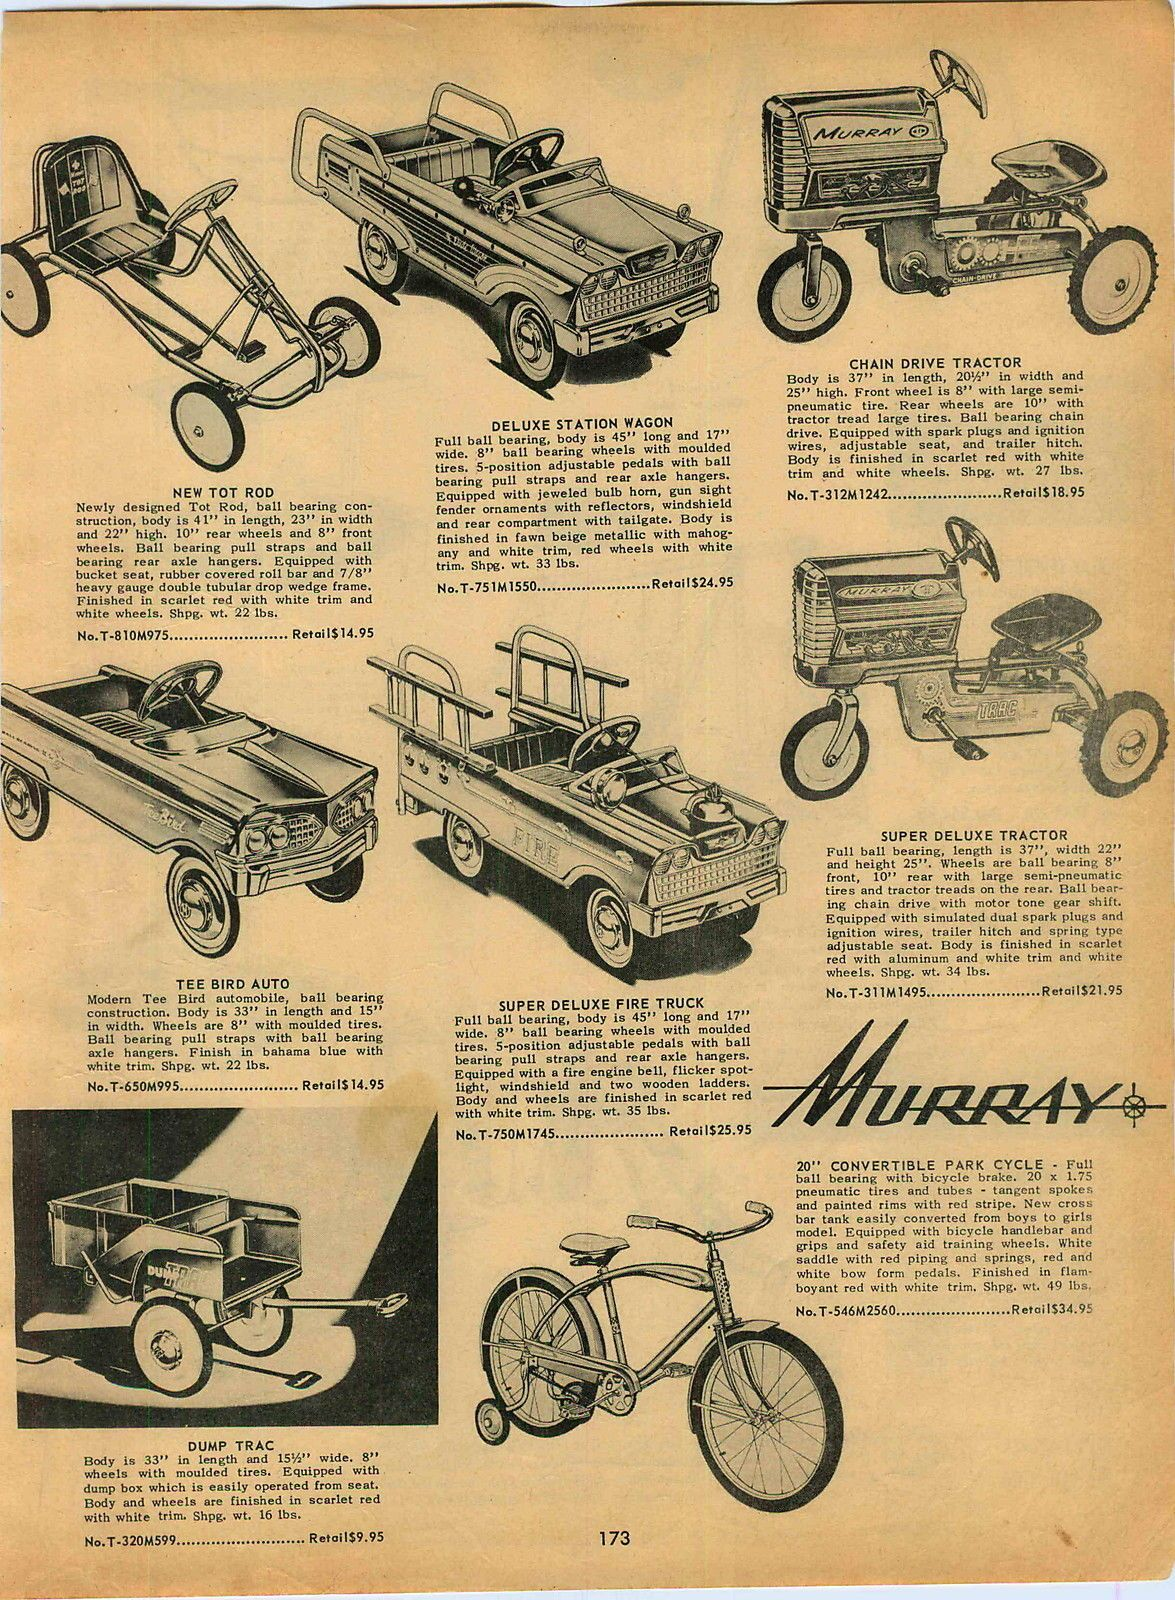 1961 Ad Murray Pedal Cars